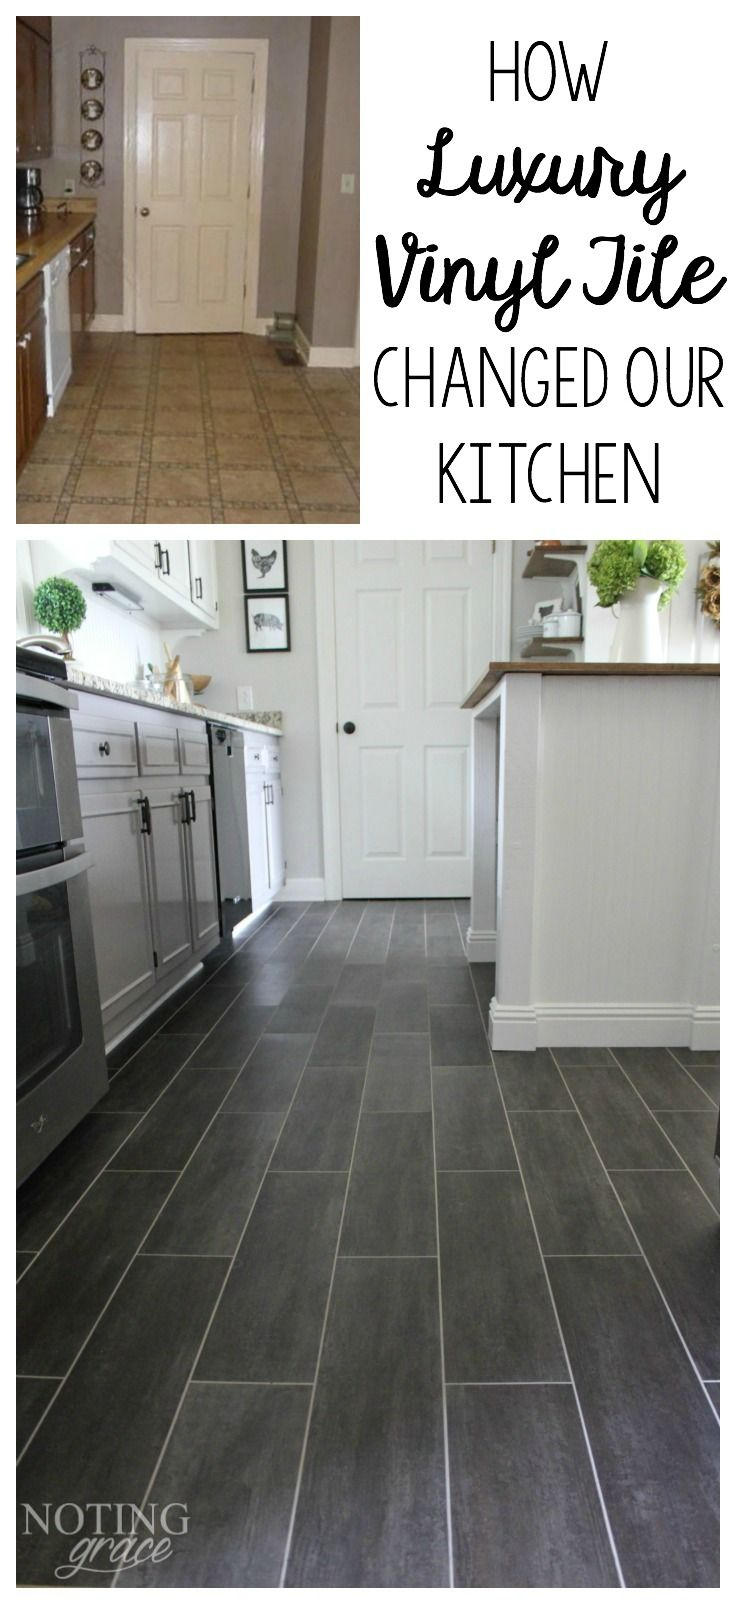 Diy kitchen flooring luxury vinyl tile vinyl tiles and Luxury kitchen flooring